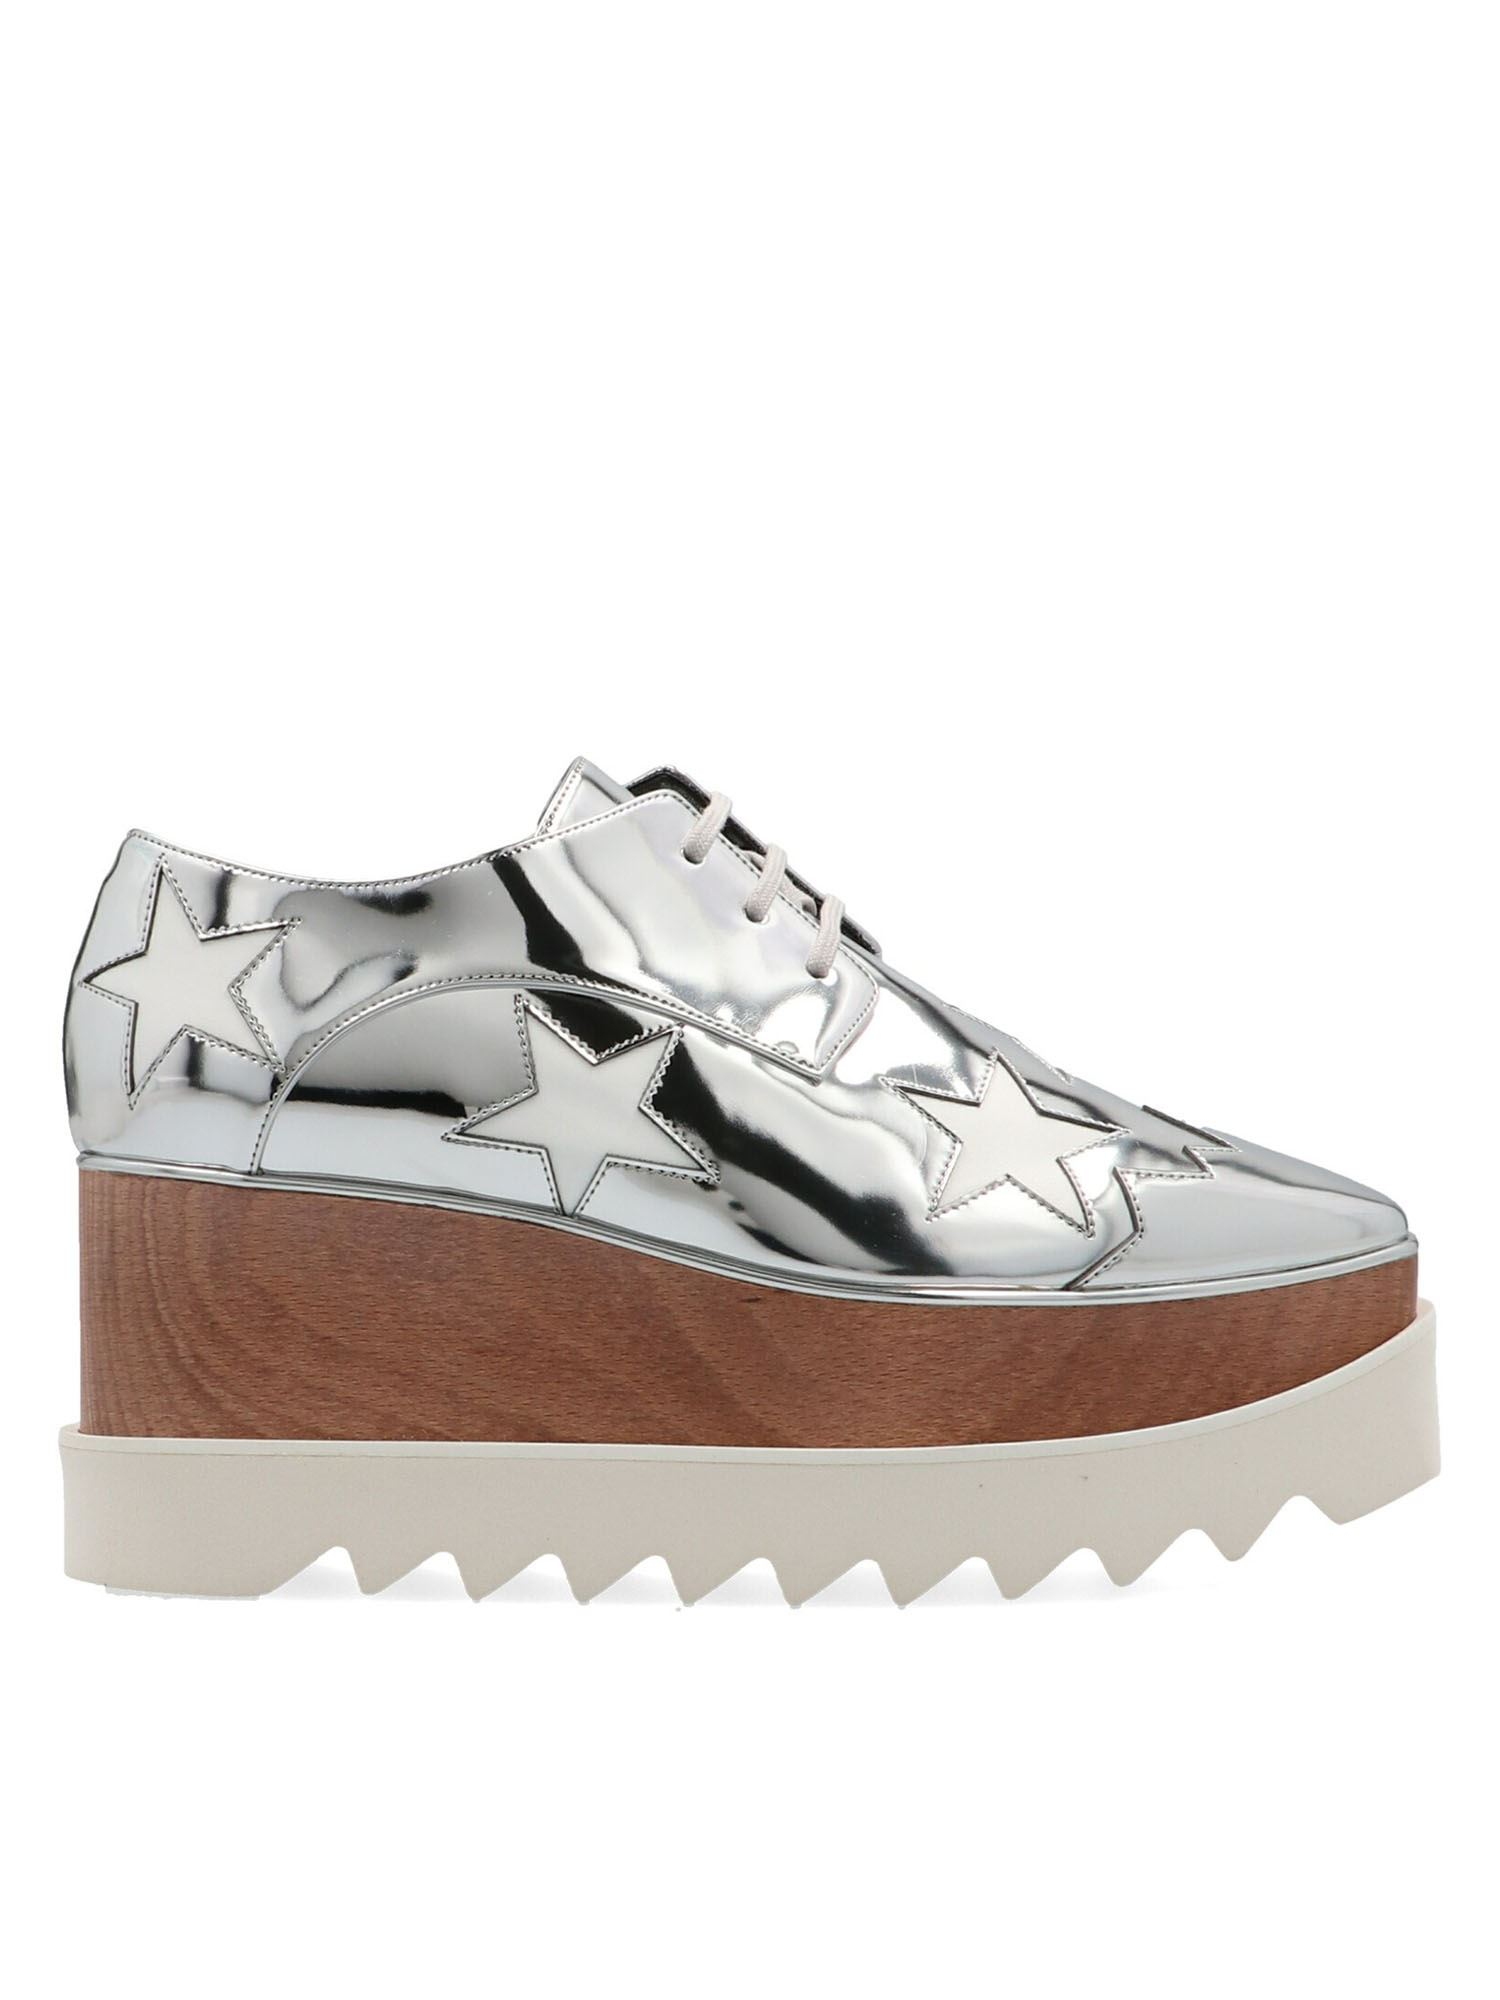 Stella Mccartney STELLA MCCARTNEY ELYSE PLATFORM SHOES IN INDIUM SILVER COLOR